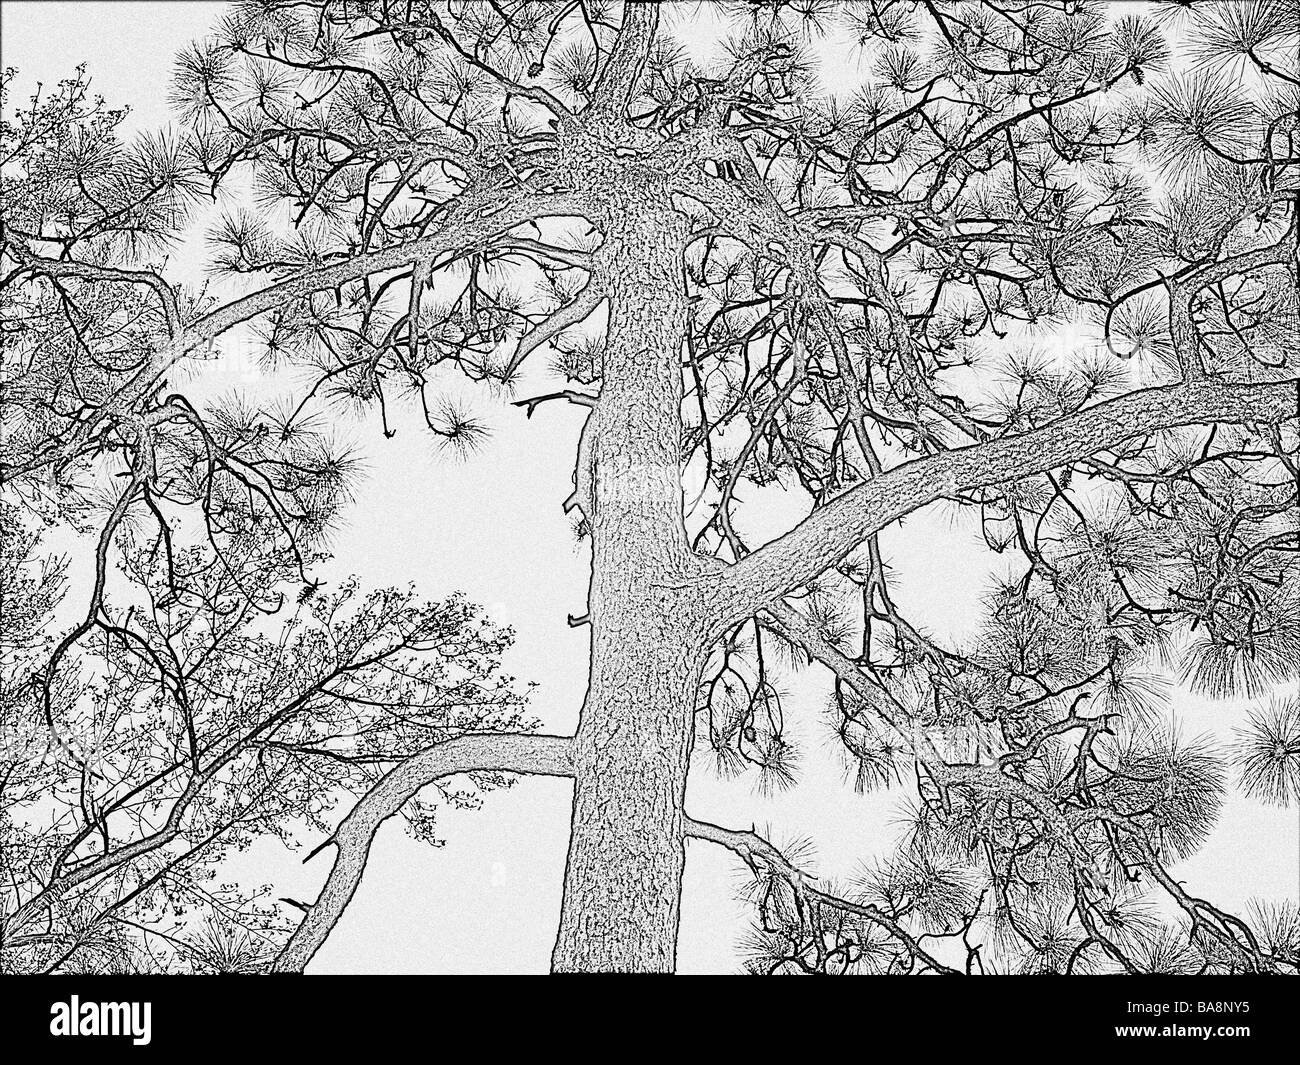 long leaf southern pine tree in a drawing adaptation with detailed branches needles and trunk - Stock Image